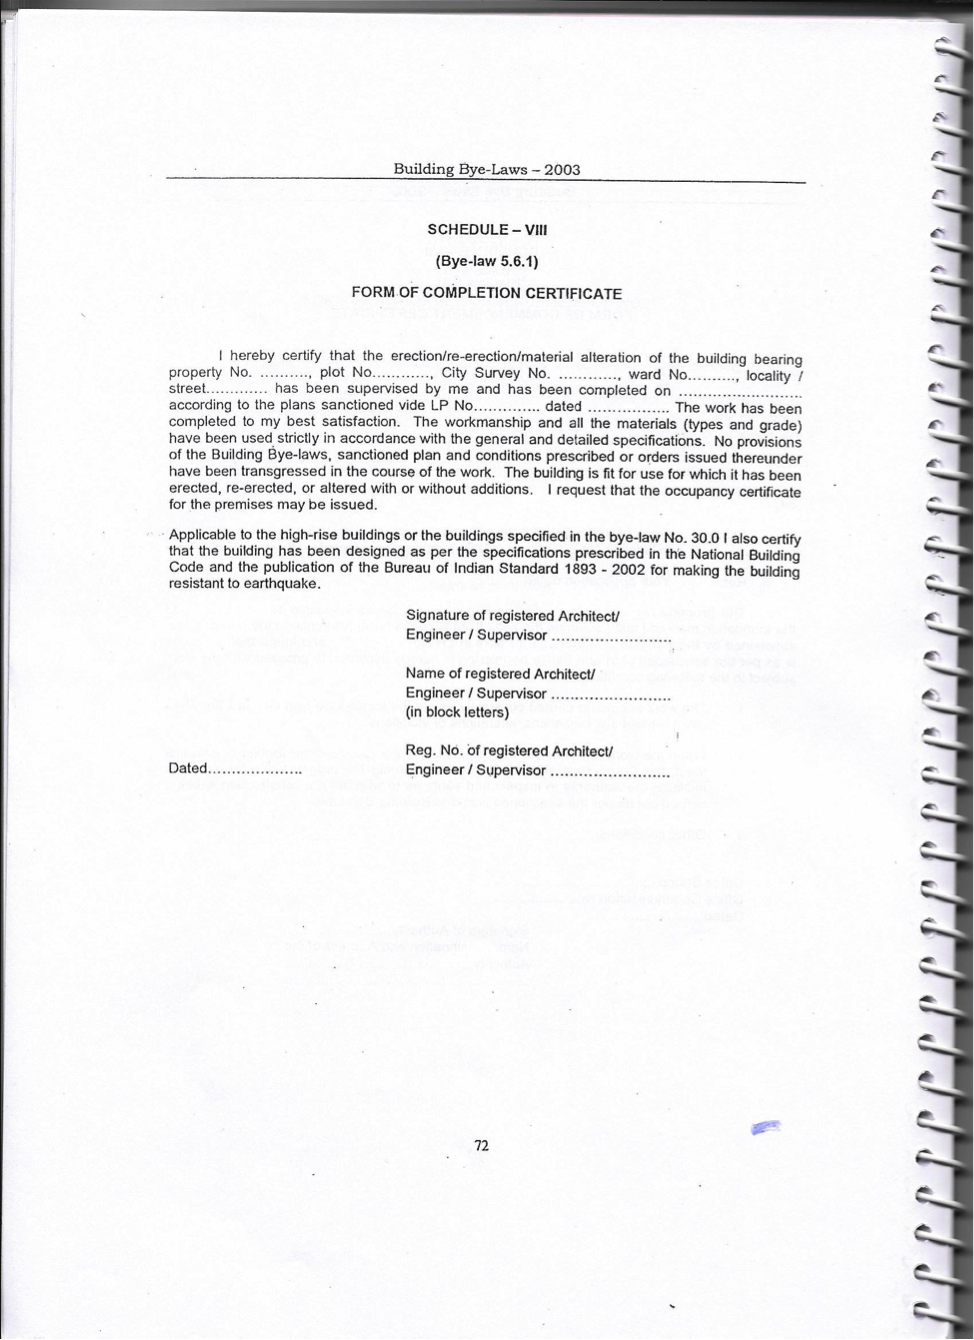 Building By Laws Form Of Completion Certificate P1.png